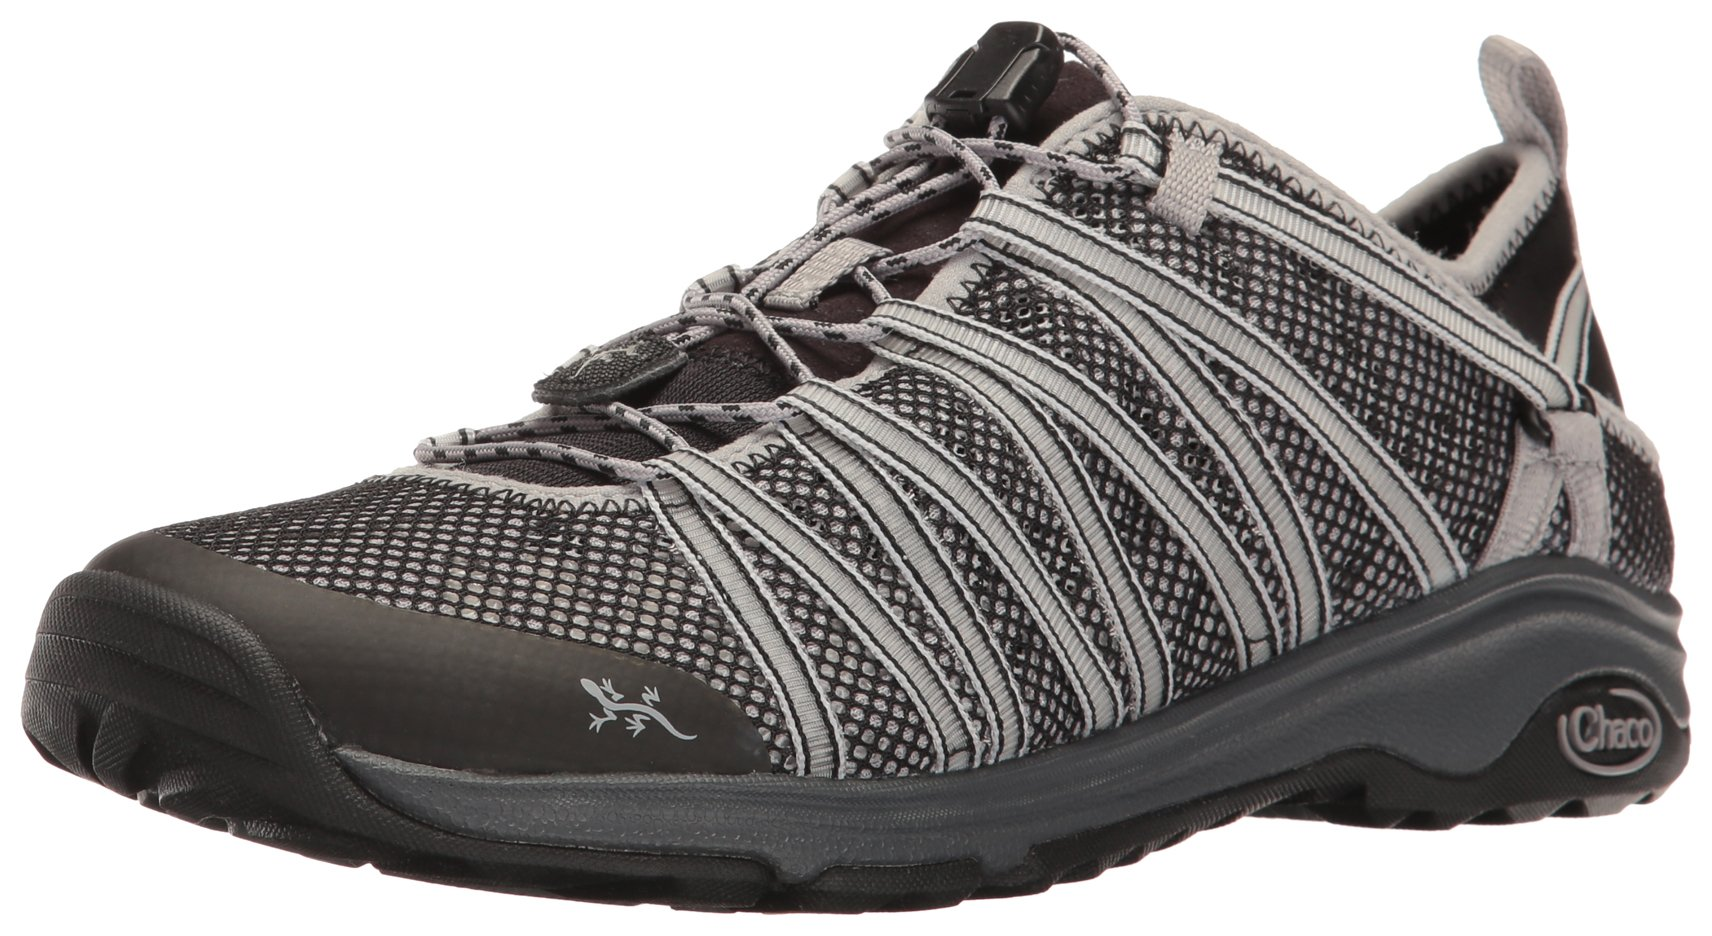 Chaco Women's Outcross Evo 1.5 Hiking Shoe, Black, 8 M US by Chaco